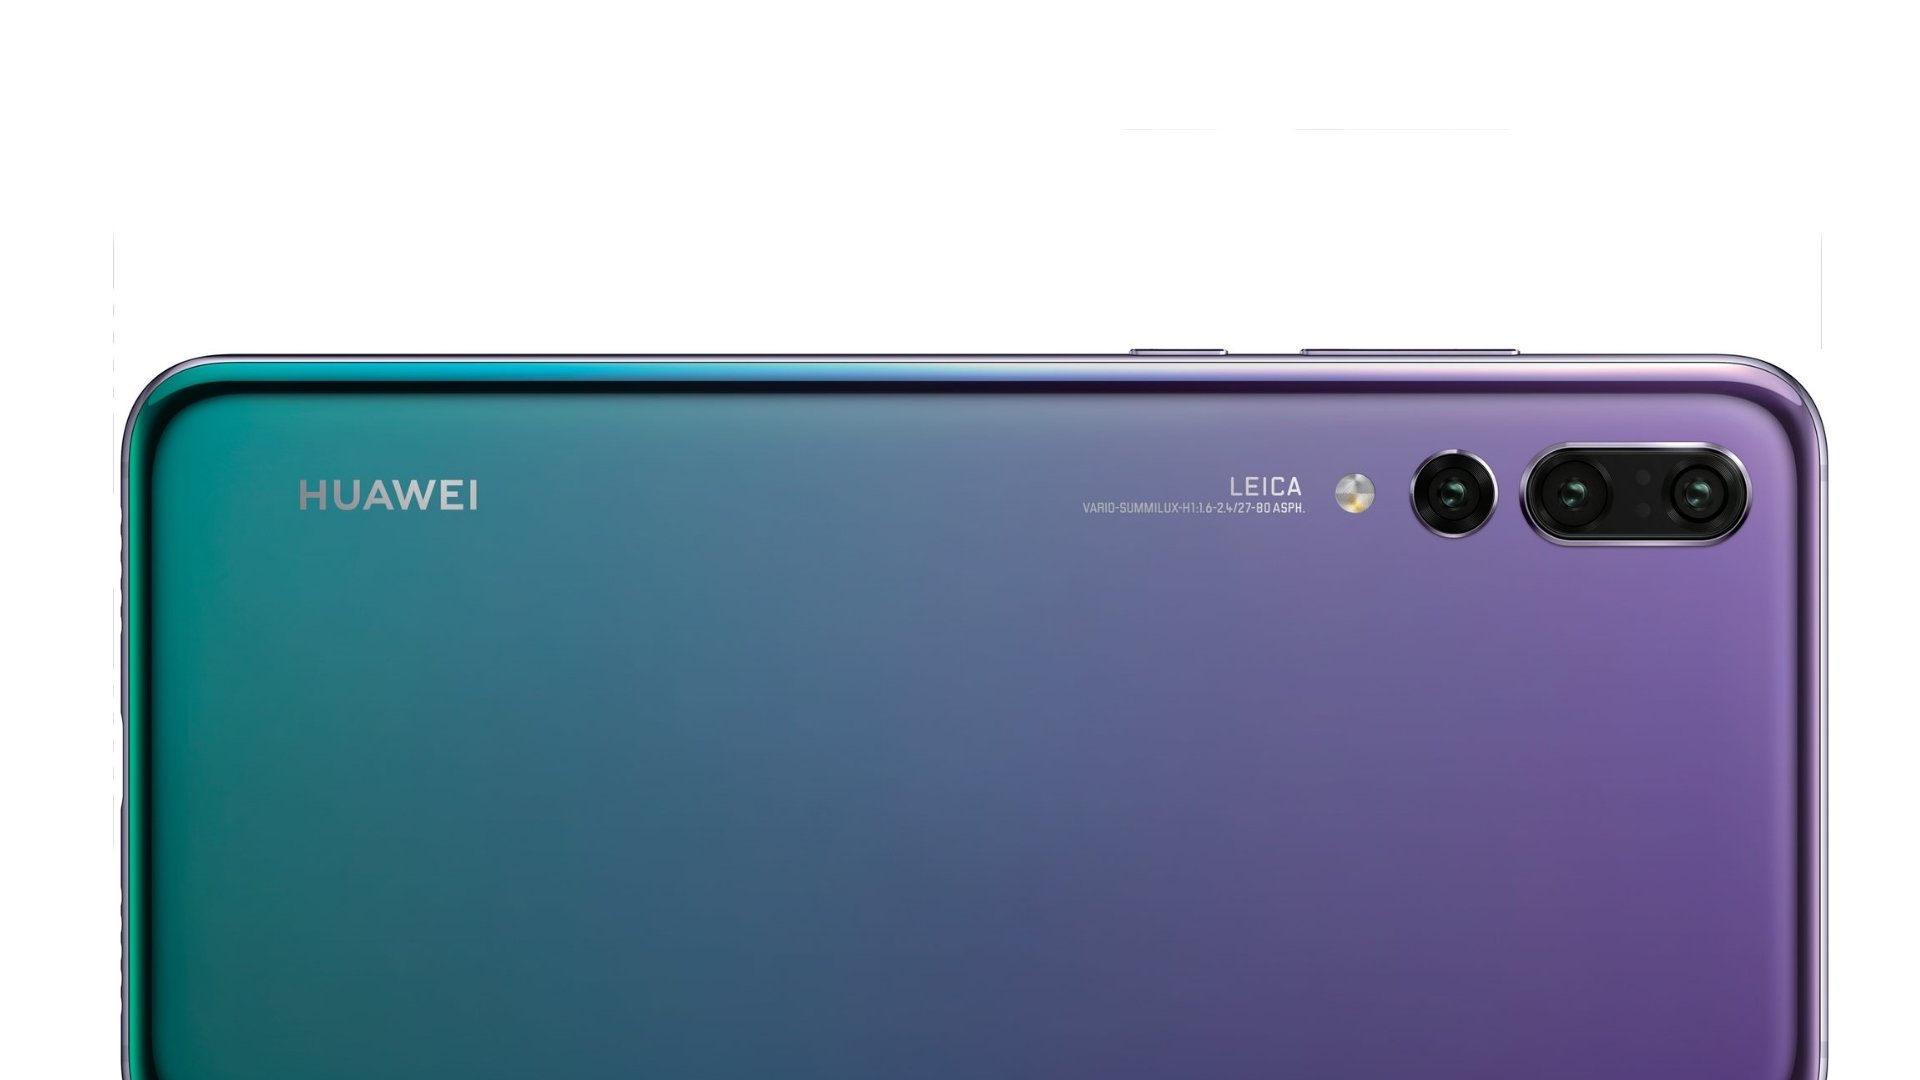 Huawei P20 Pro Review: Packing the punch against iPhone X & Galaxy S9